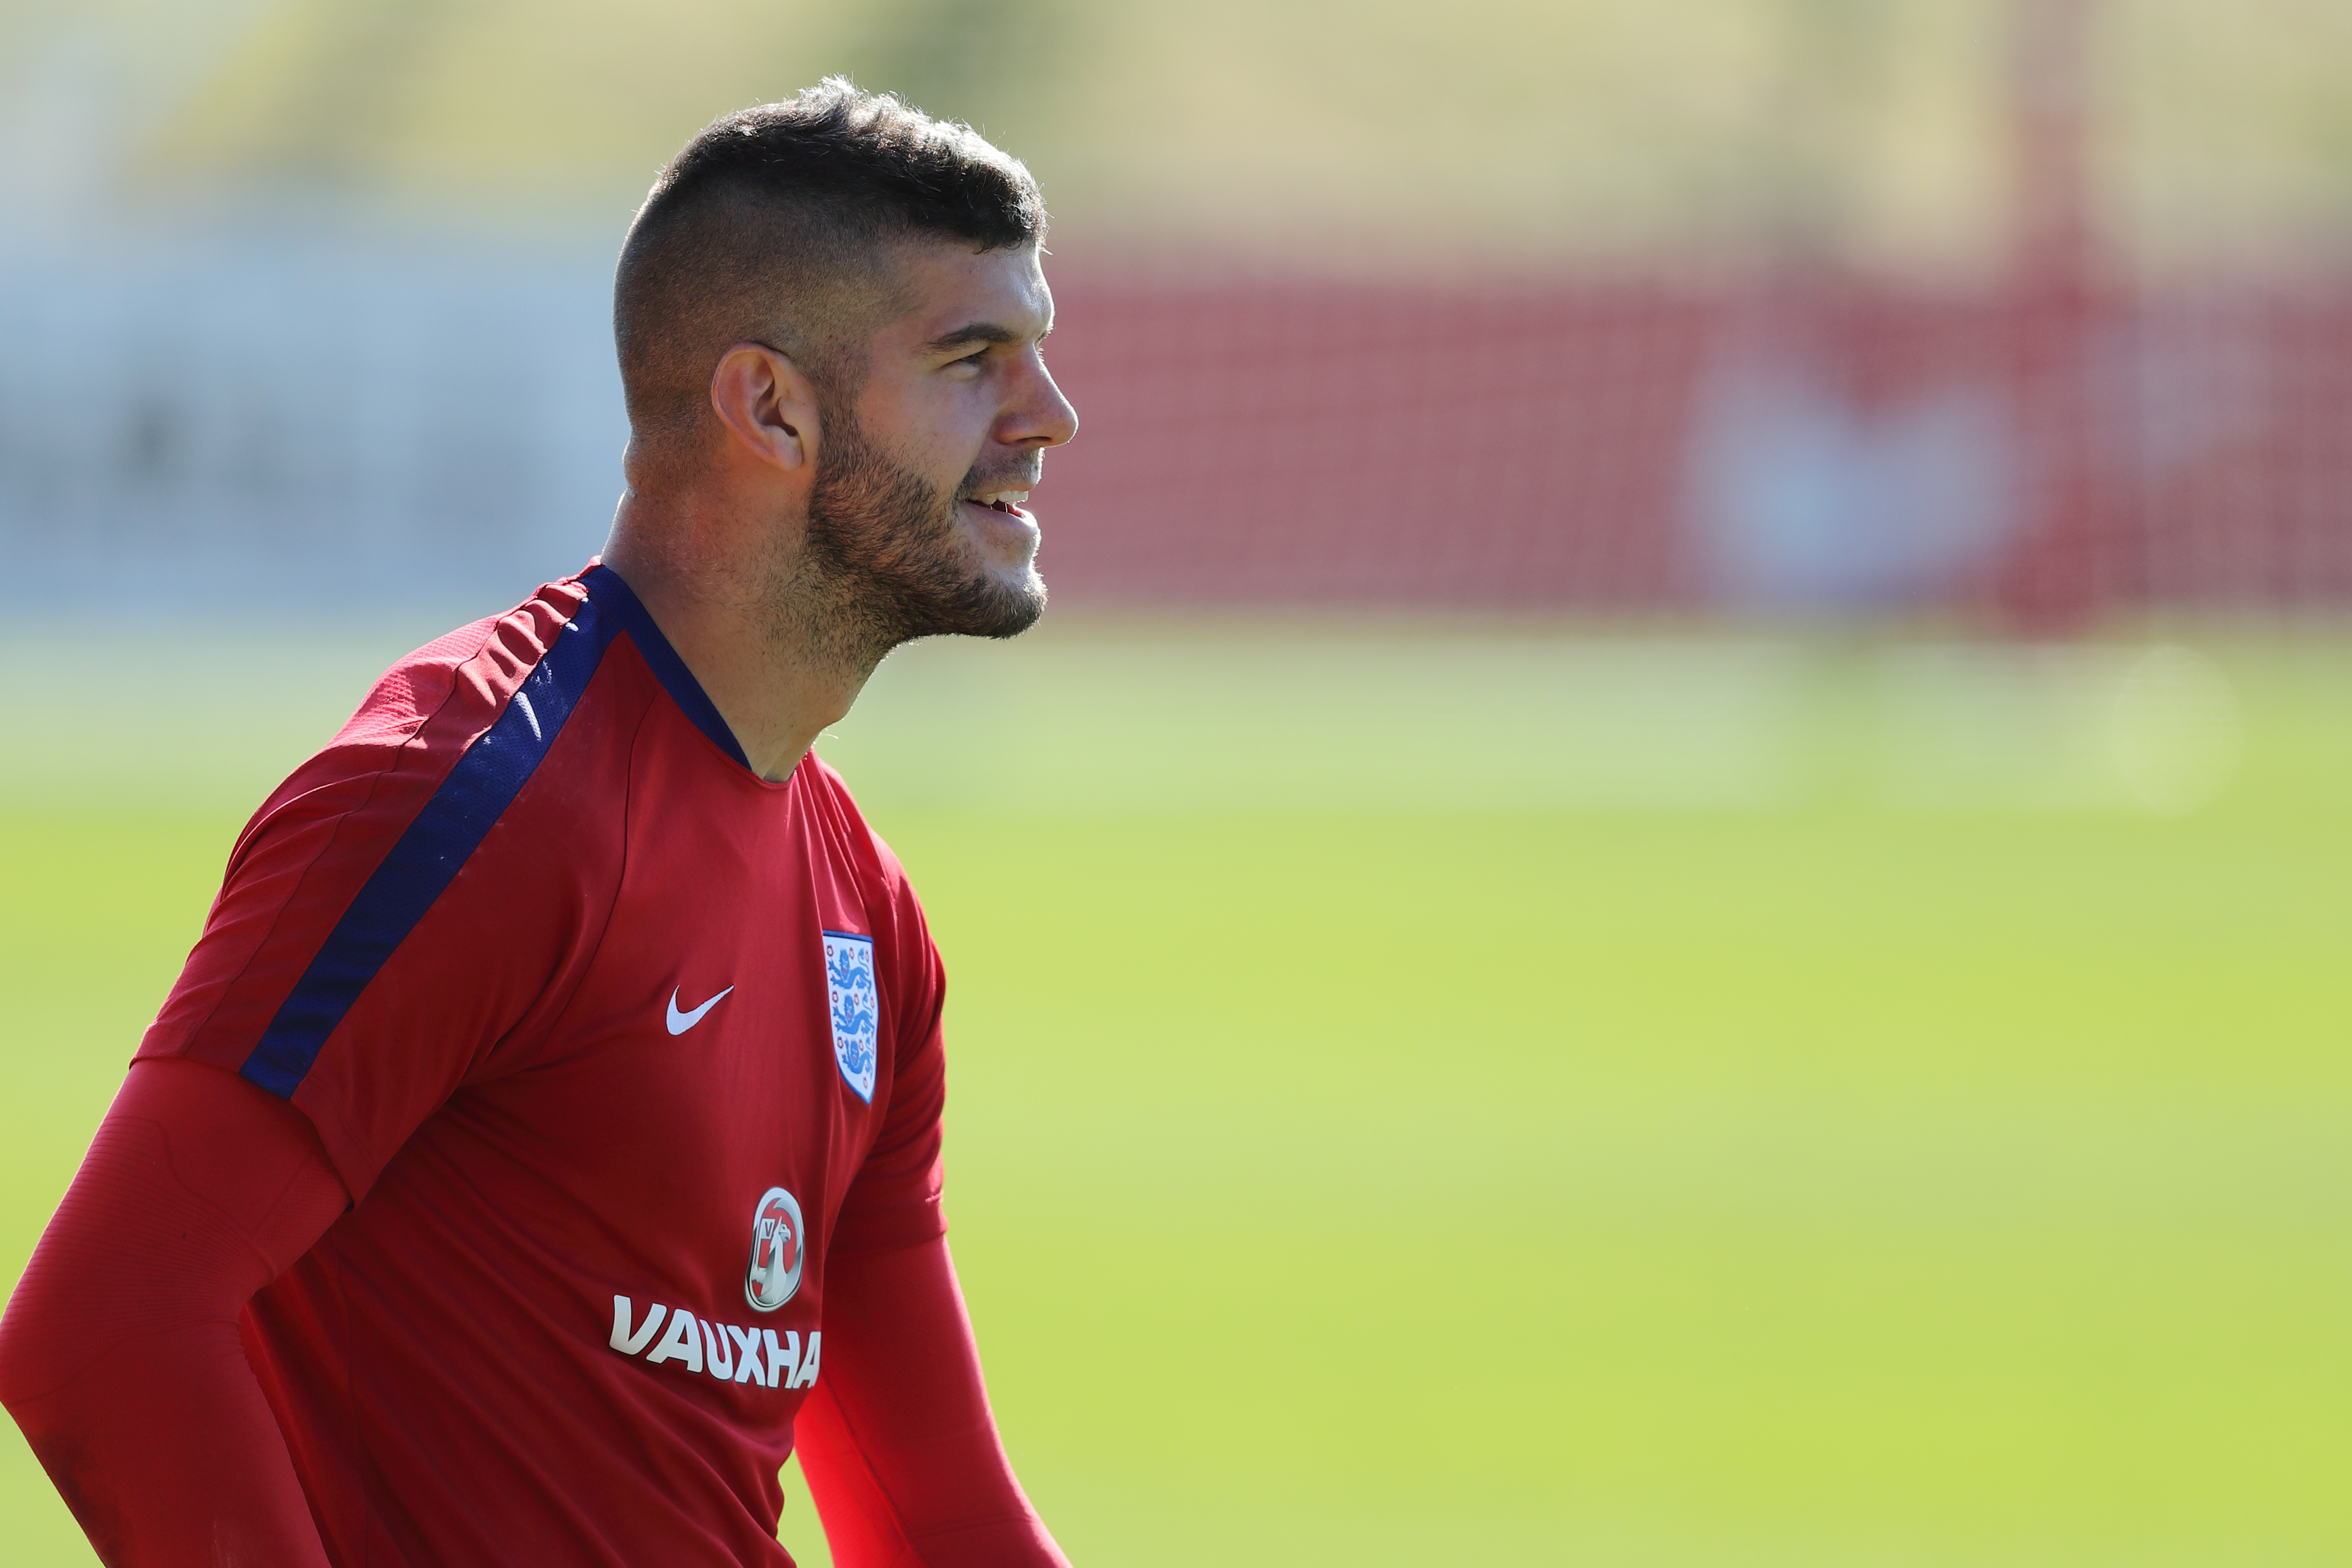 Southampton: Fraser Forster Injured, Out of England Squad